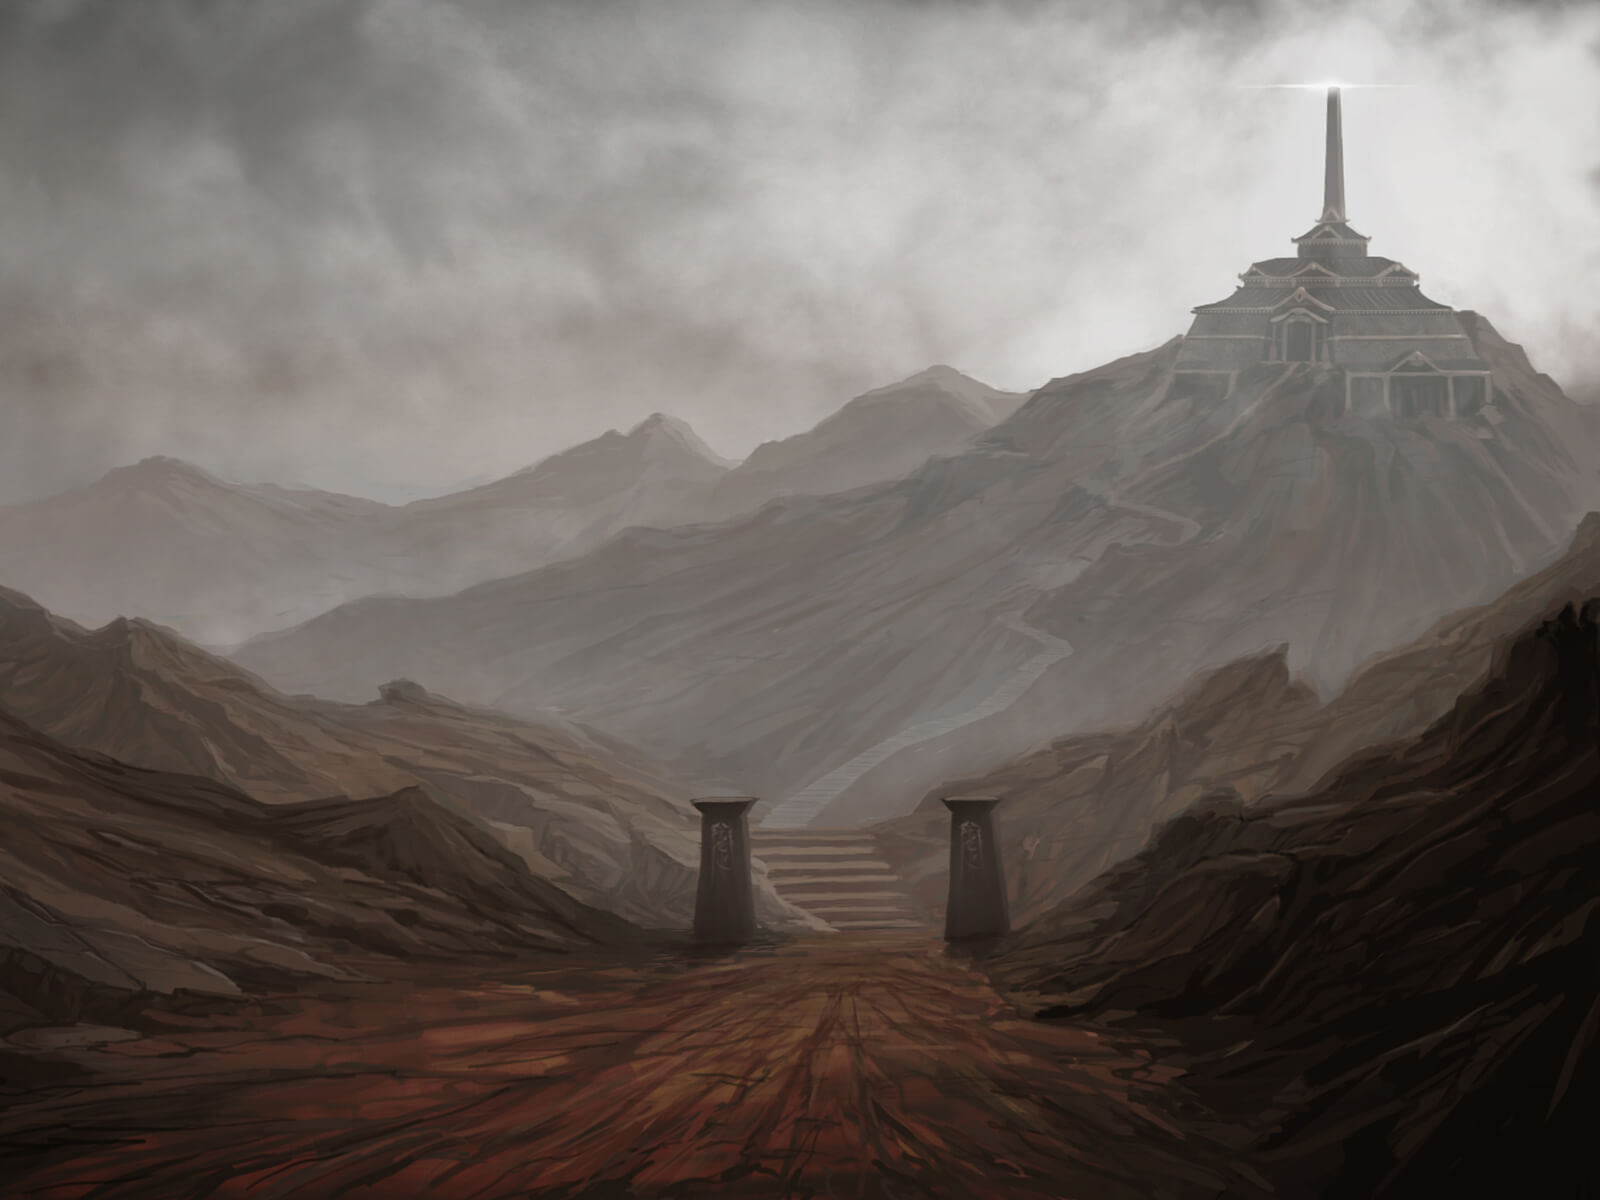 A temple and a single shining spire lie high up a mountainside, overlooking a desolate rocky landscape below.